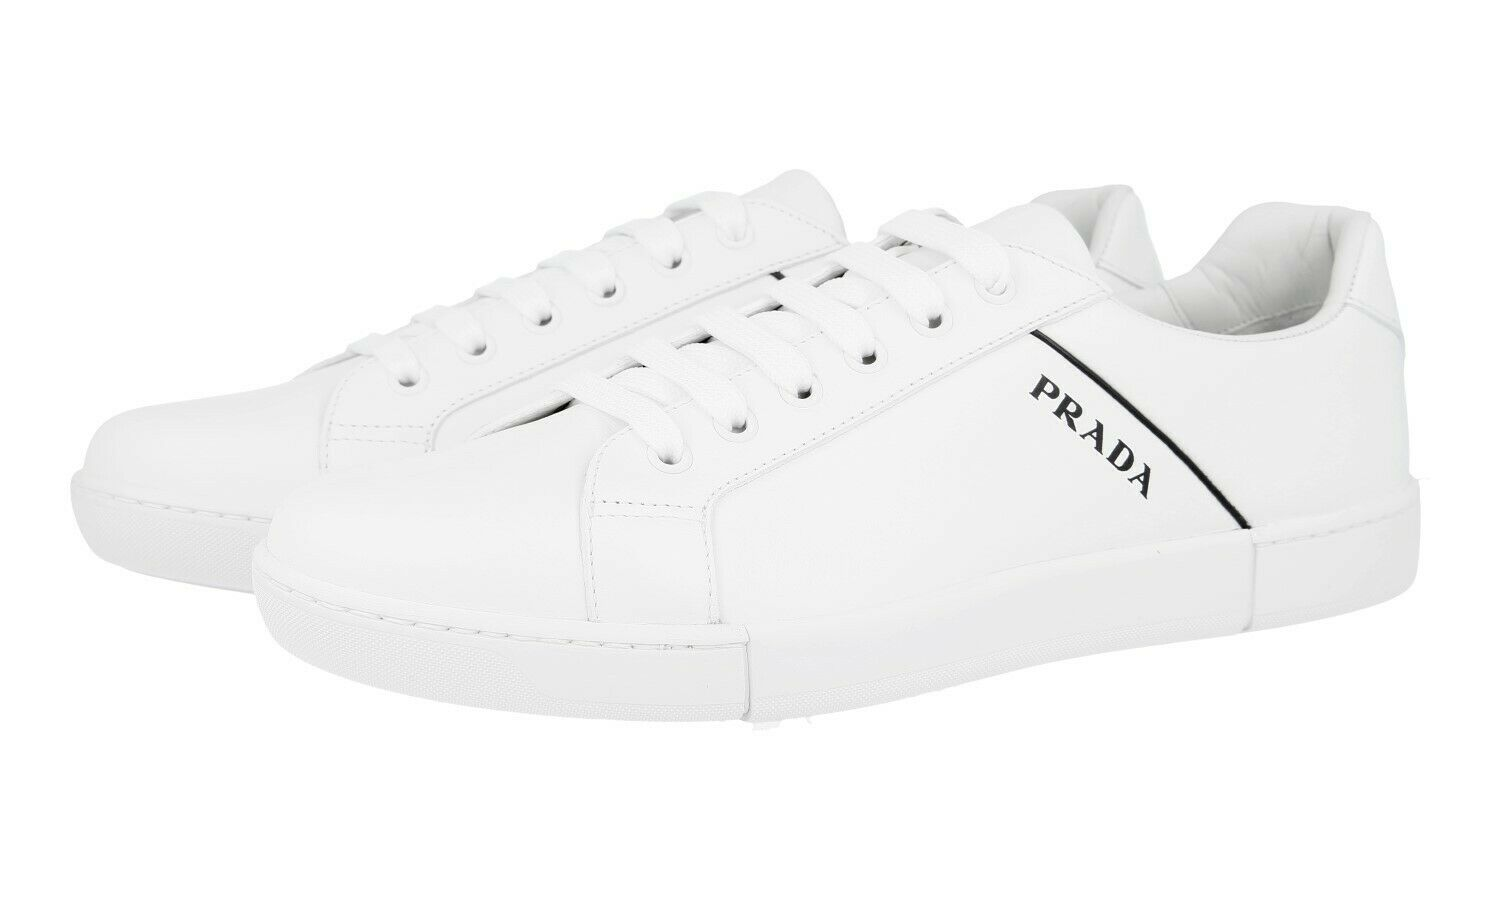 AUTH LUXURY PRADA TRAINERS SHOES 4E3340 WHITE NEW 11,5 45,5 46